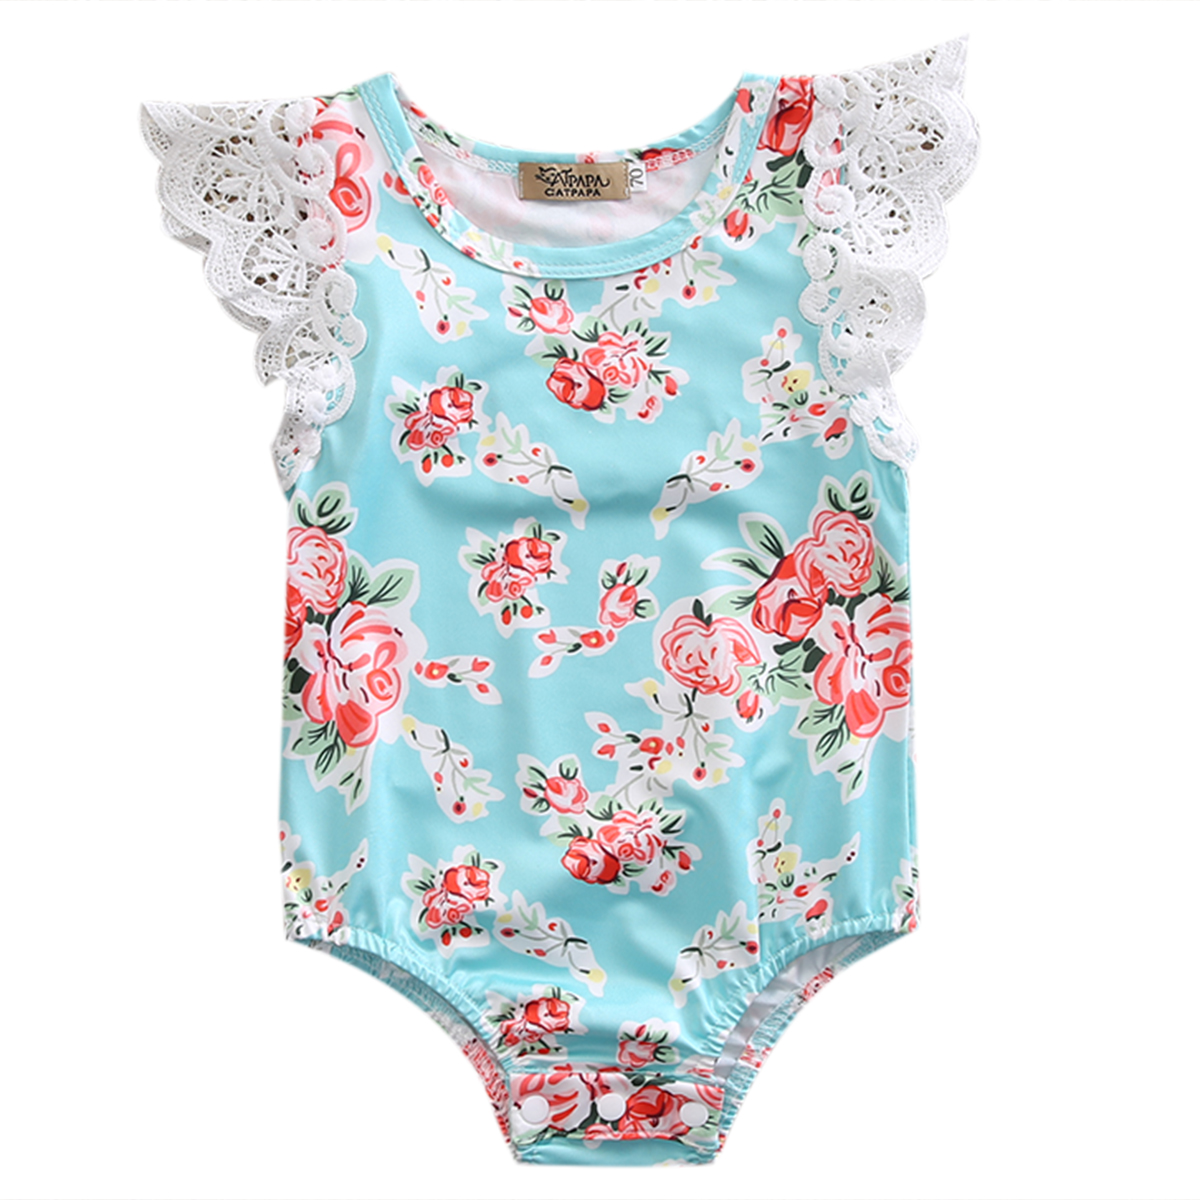 2017 Newborn Baby Girl Infant Floral Sleeveless Lace Jumpsuit Bodysuit Outfits Clothes 0-24M